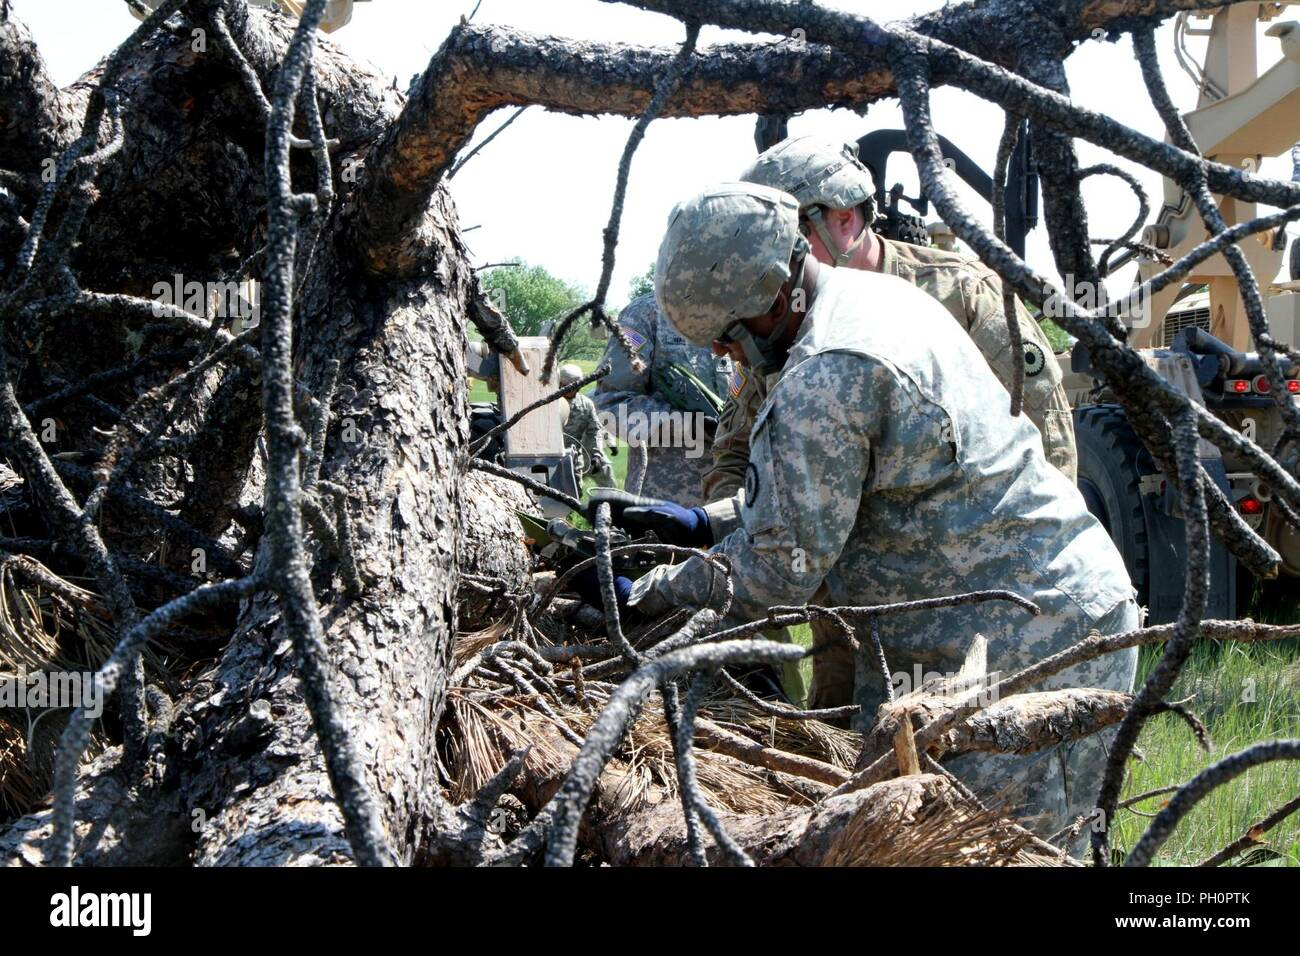 Army Sgt. Waywood Jackson, truck driver with the 137th Transportation Company, Kansas Army National Guard, unloads timber at Red Shirt, S.D., on the Pine Ridge Indian Reservation, June 15, 2018. This mission provides relevant training while also providing humanitarian aid to the Native American reservations. Stock Photo